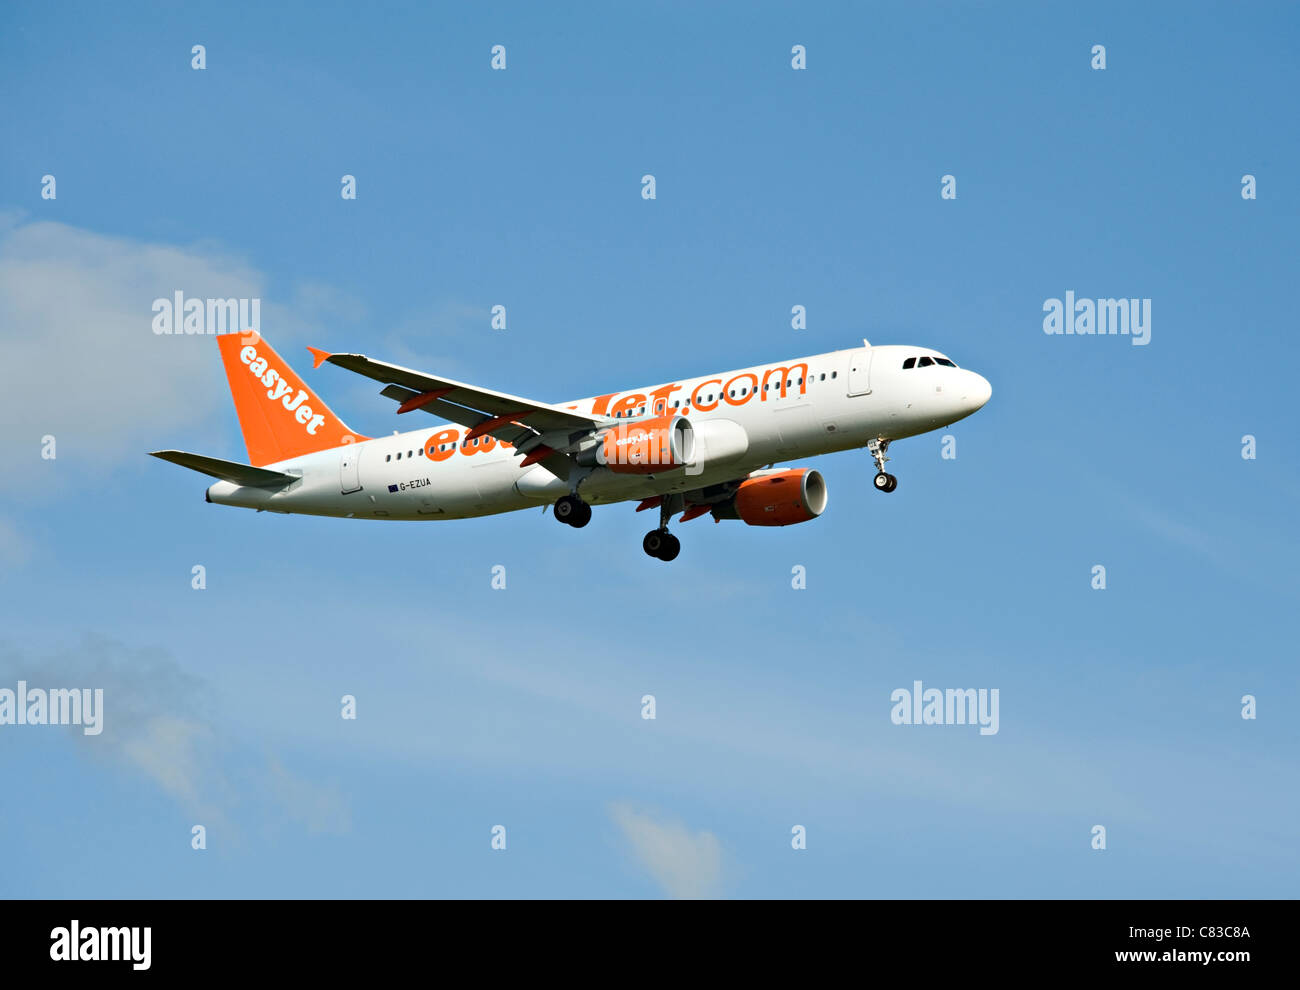 EasyJet Airbus A320-214 Airliner G-EZUA Landing at Gatwick International Airport West Sussex England United Kingdom Stock Photo